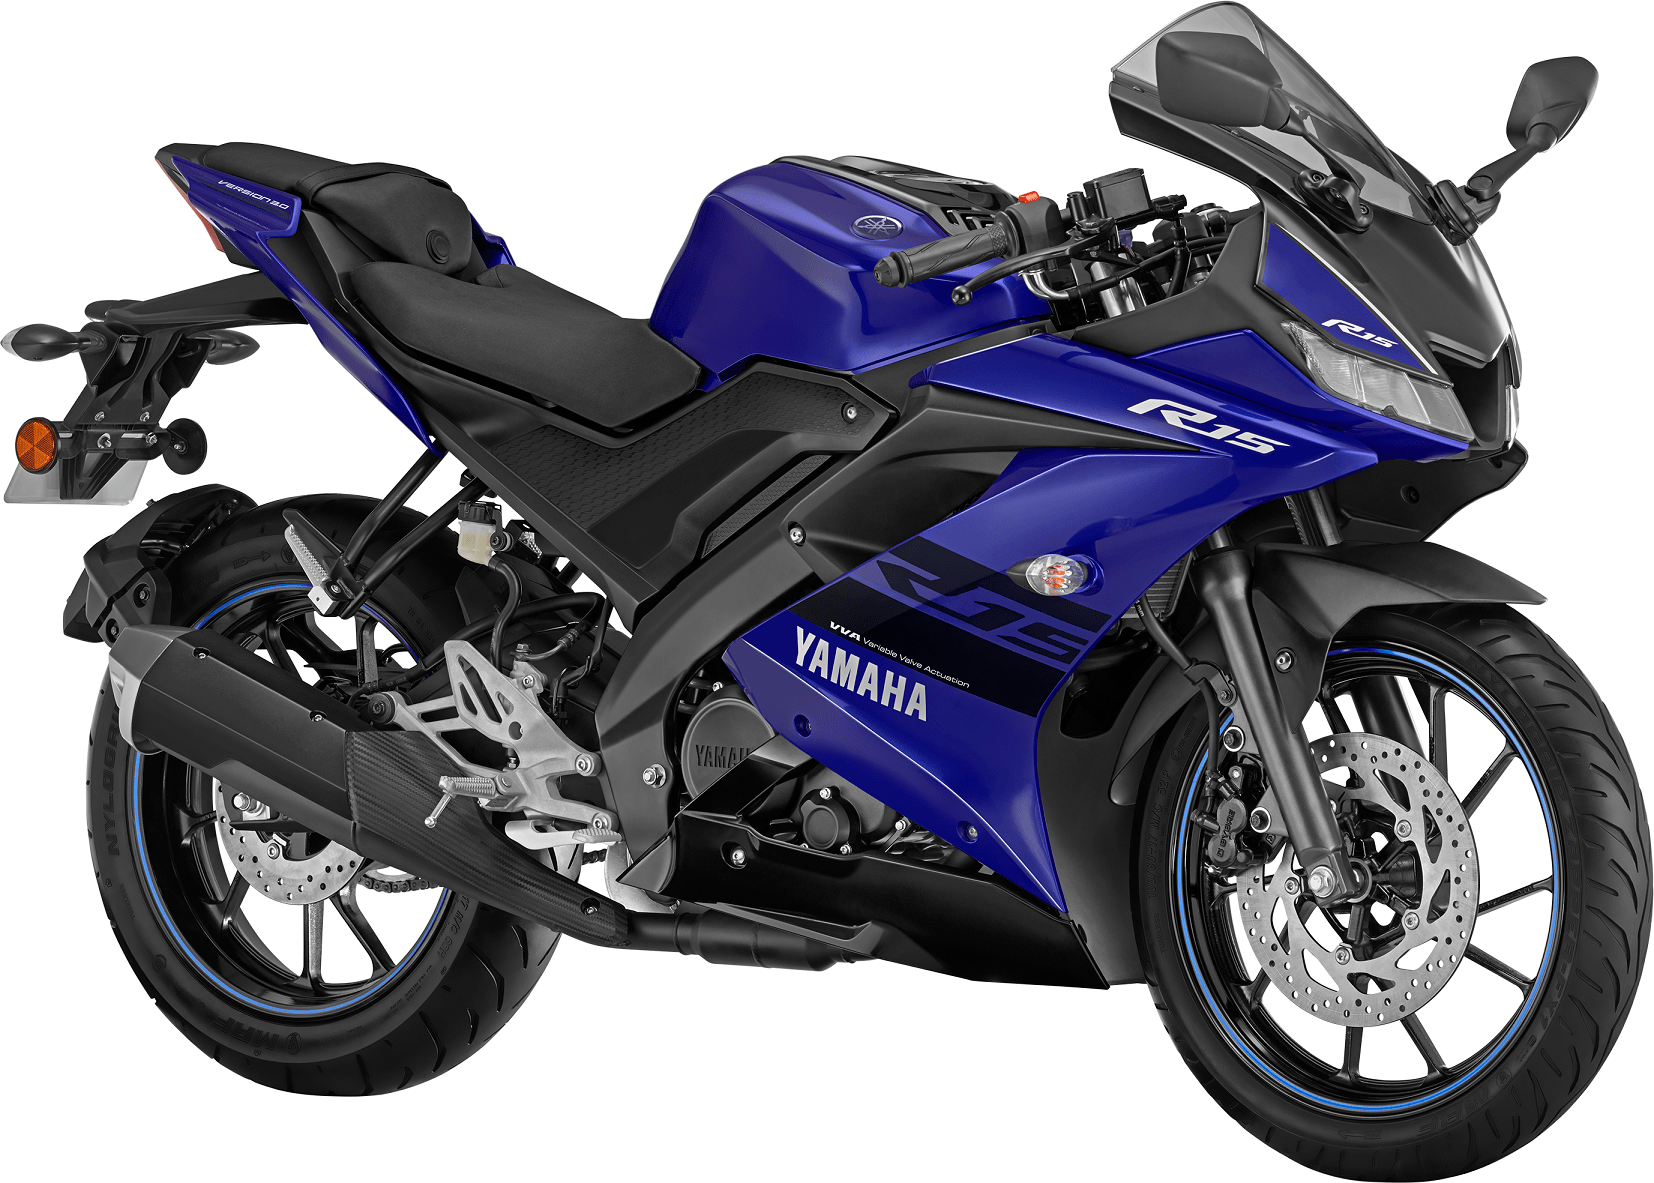 Auto Expo 2018 2018 Yamaha Yzf R15 Launched In India At